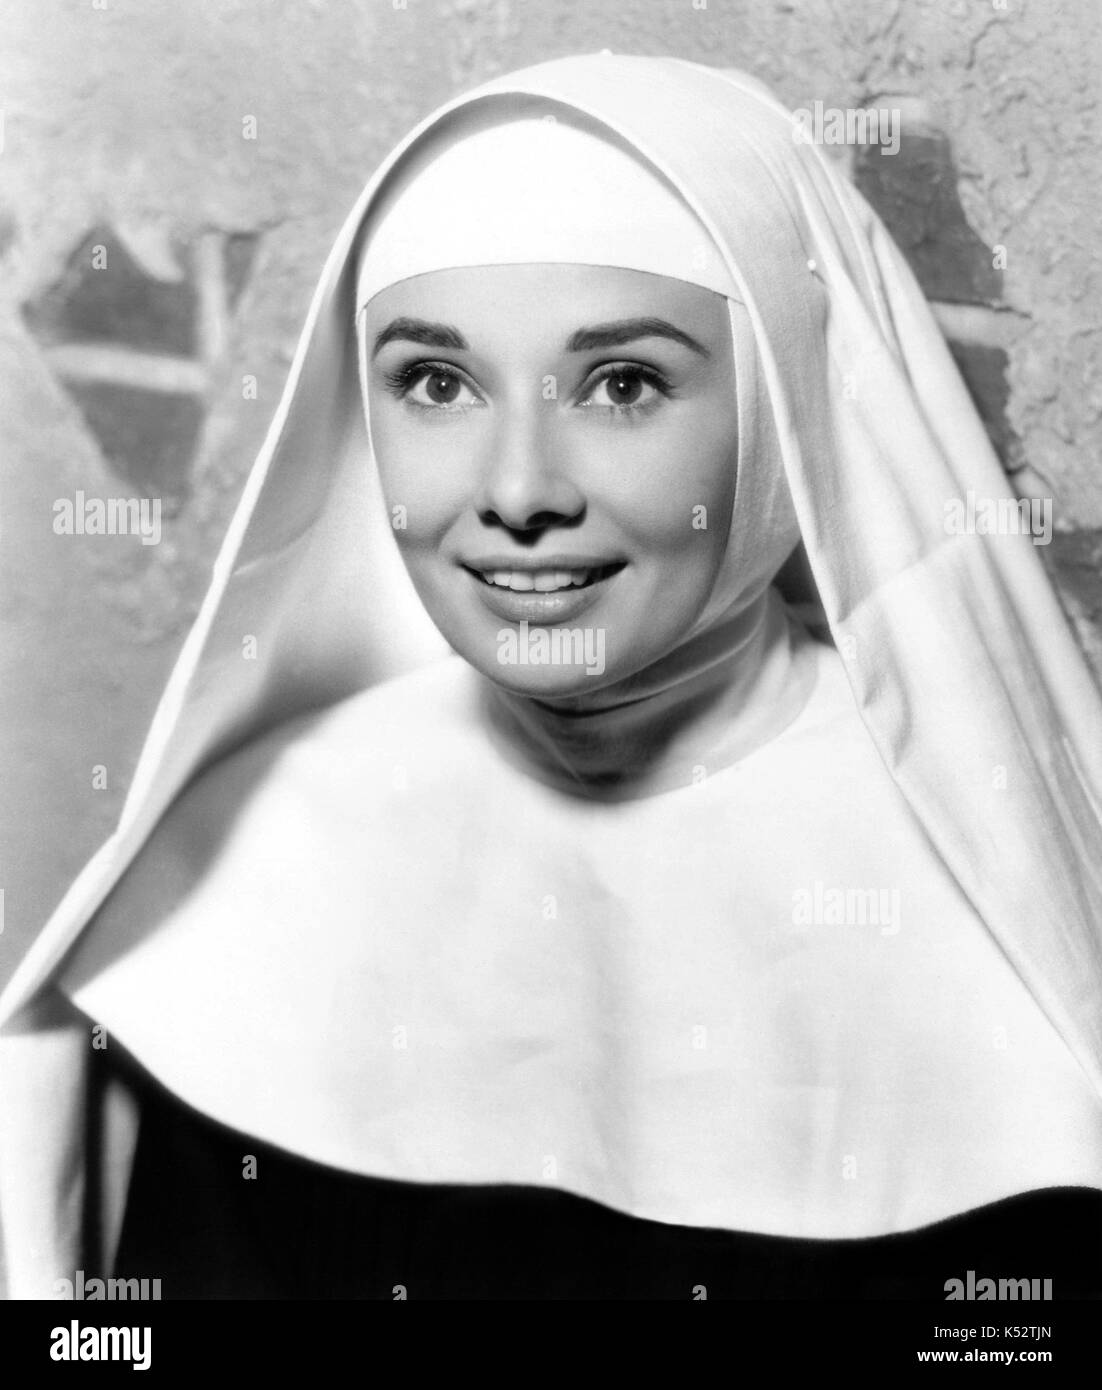 THE NUN'S STORY 1959 Warner Bros film with Audrey Hepburn - Stock Image